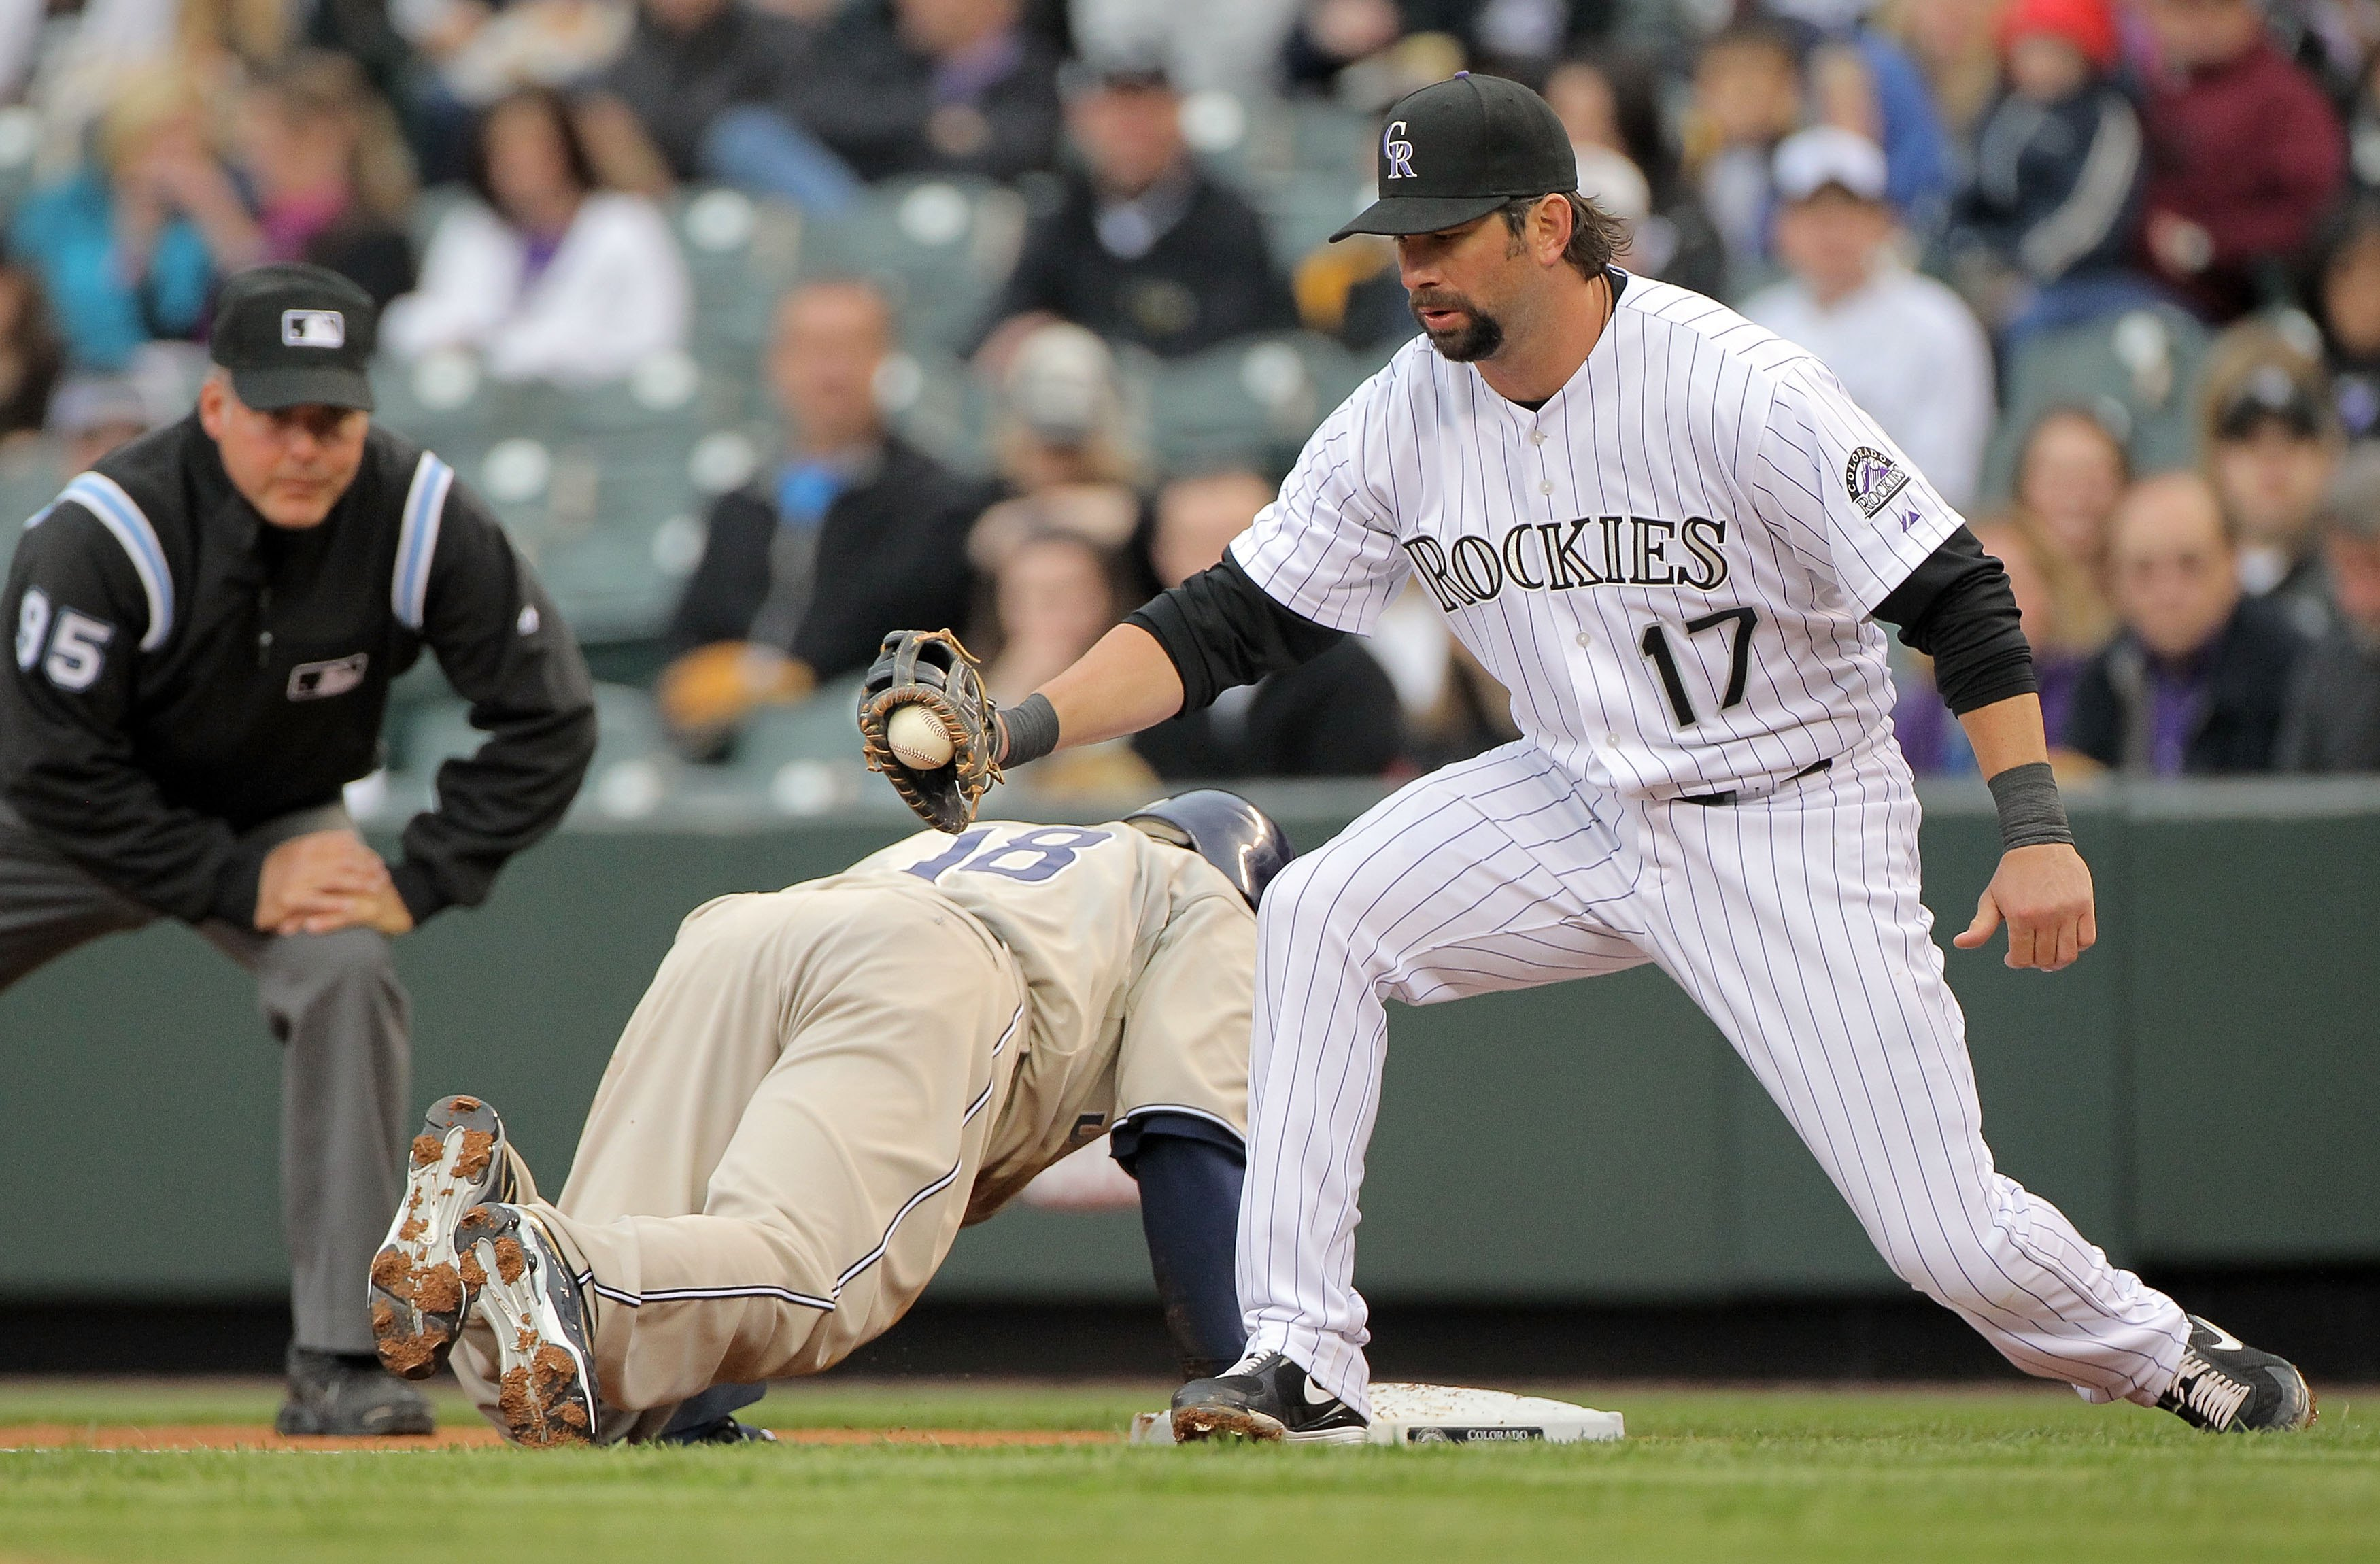 DENVER - APRIL 10:  First baseman Todd Helton #17 of the Colorado Rockies takes a pick off throw at first base to hold Tony Gwynn Jr. #18 of the San Diego Padres as umpire Tim Timmons oversees the play during MLB action at Coors Field on April 10, 2010 in